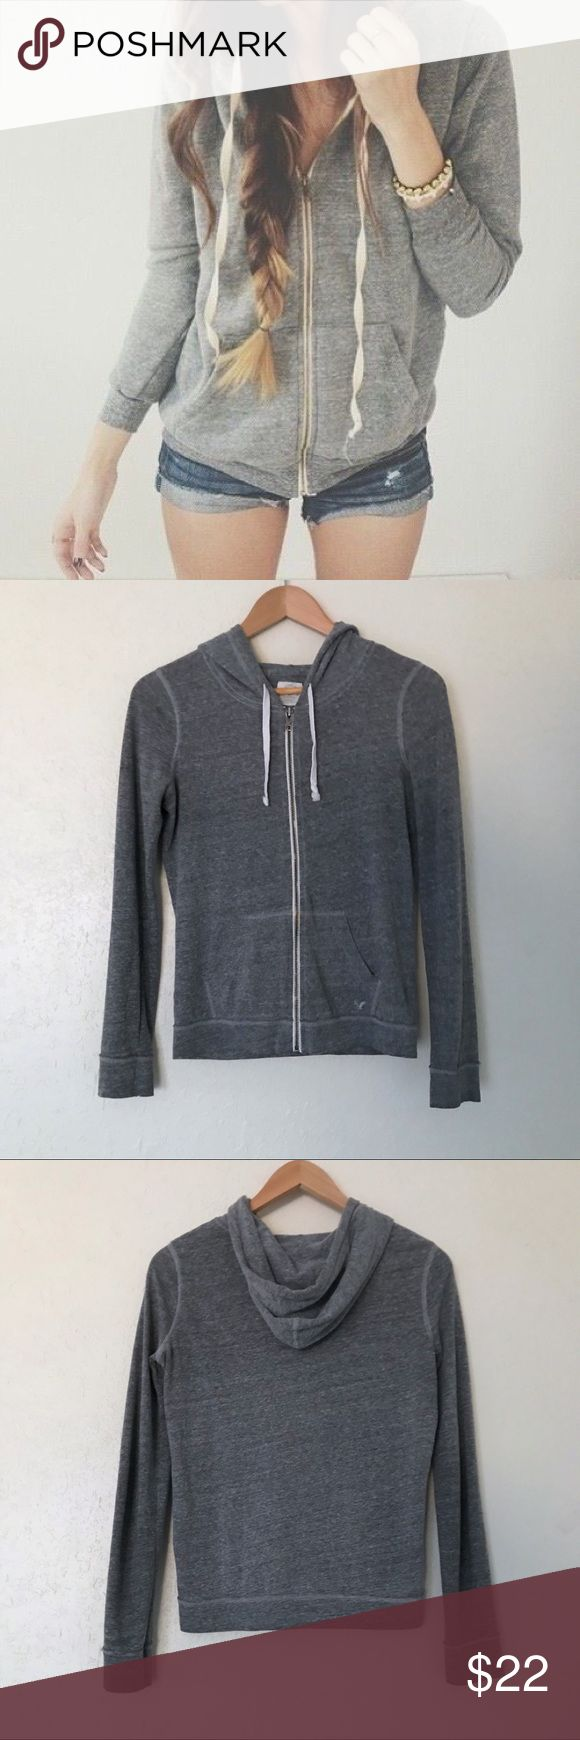 American Eagle; Gray Zip Up Hoodie Excellent condition. Light wear, the hood string is staring to fray (see last pic). American Eagle outfitters. Lightweight and soft jersey feel. American Eagle Outfitters Tops Sweatshirts & Hoodies